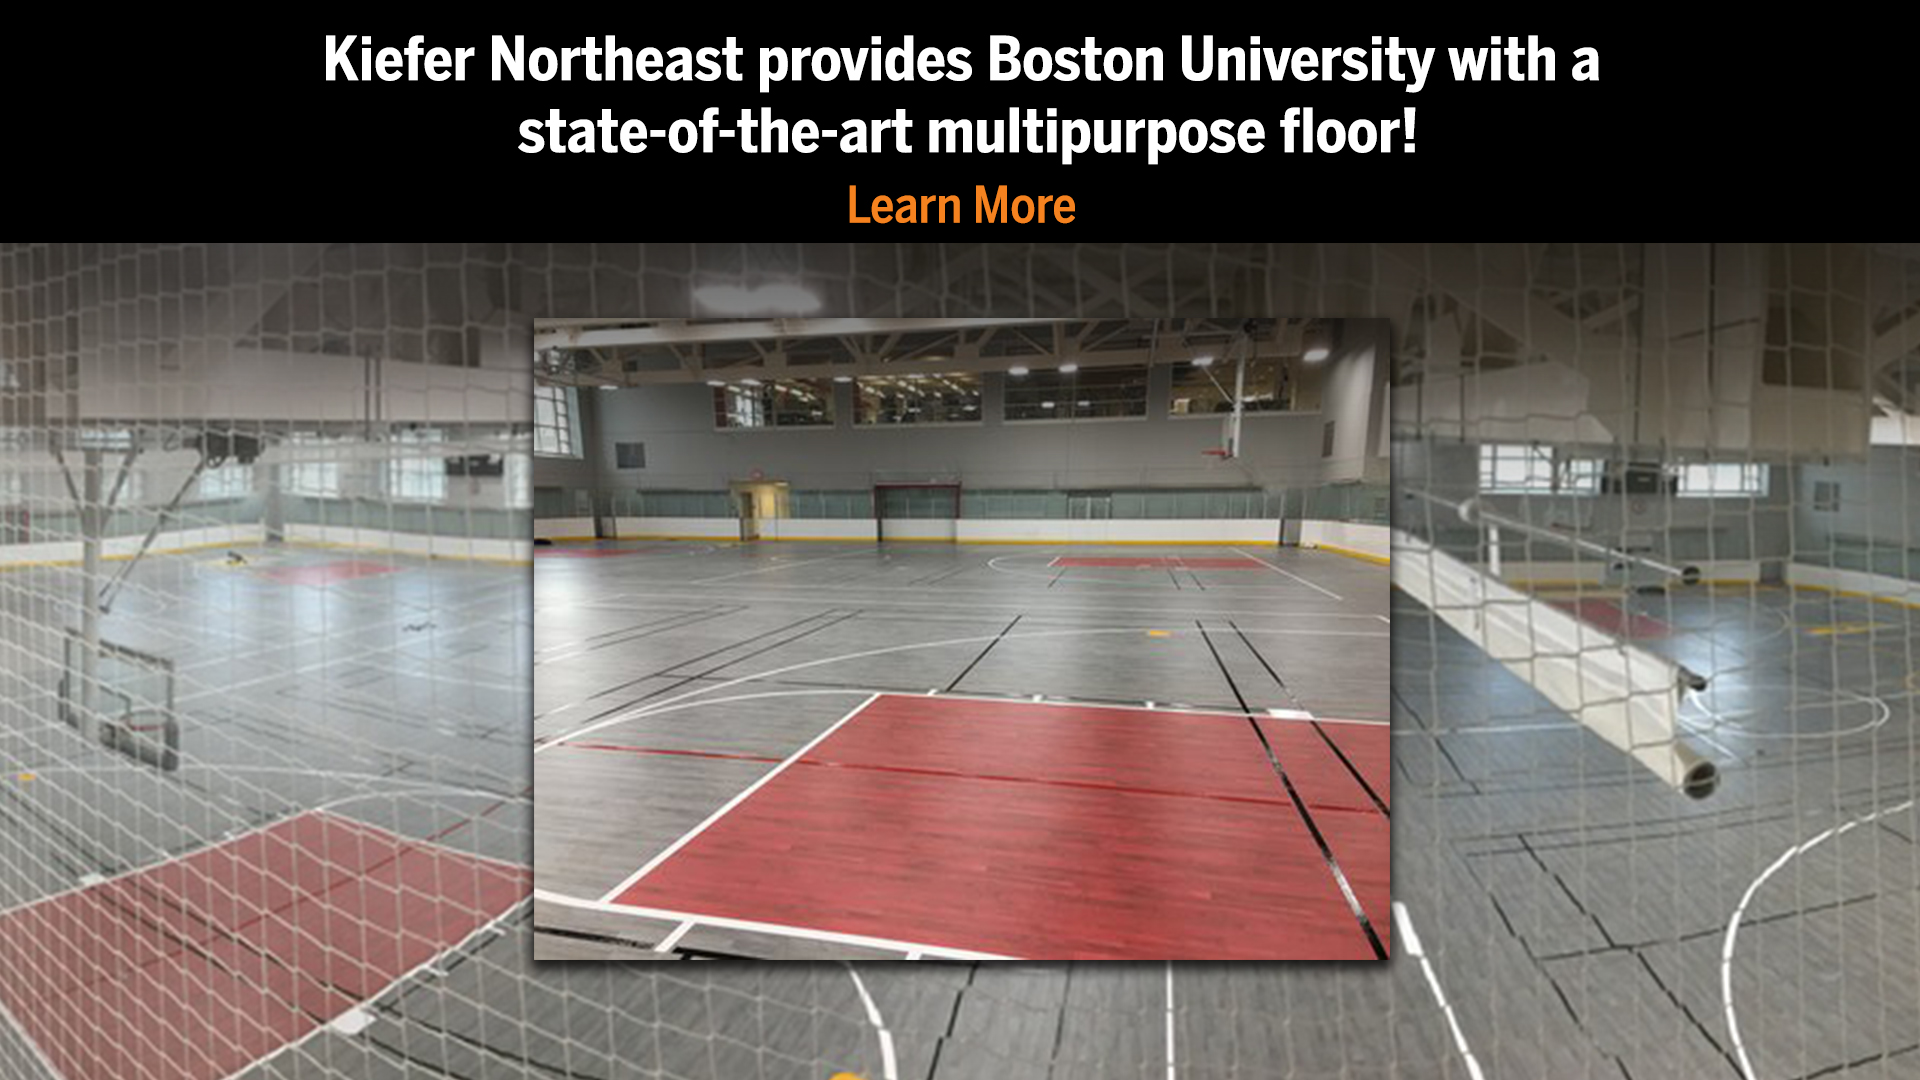 Boston University Lumaflex Flooring by Kiefer Northeast